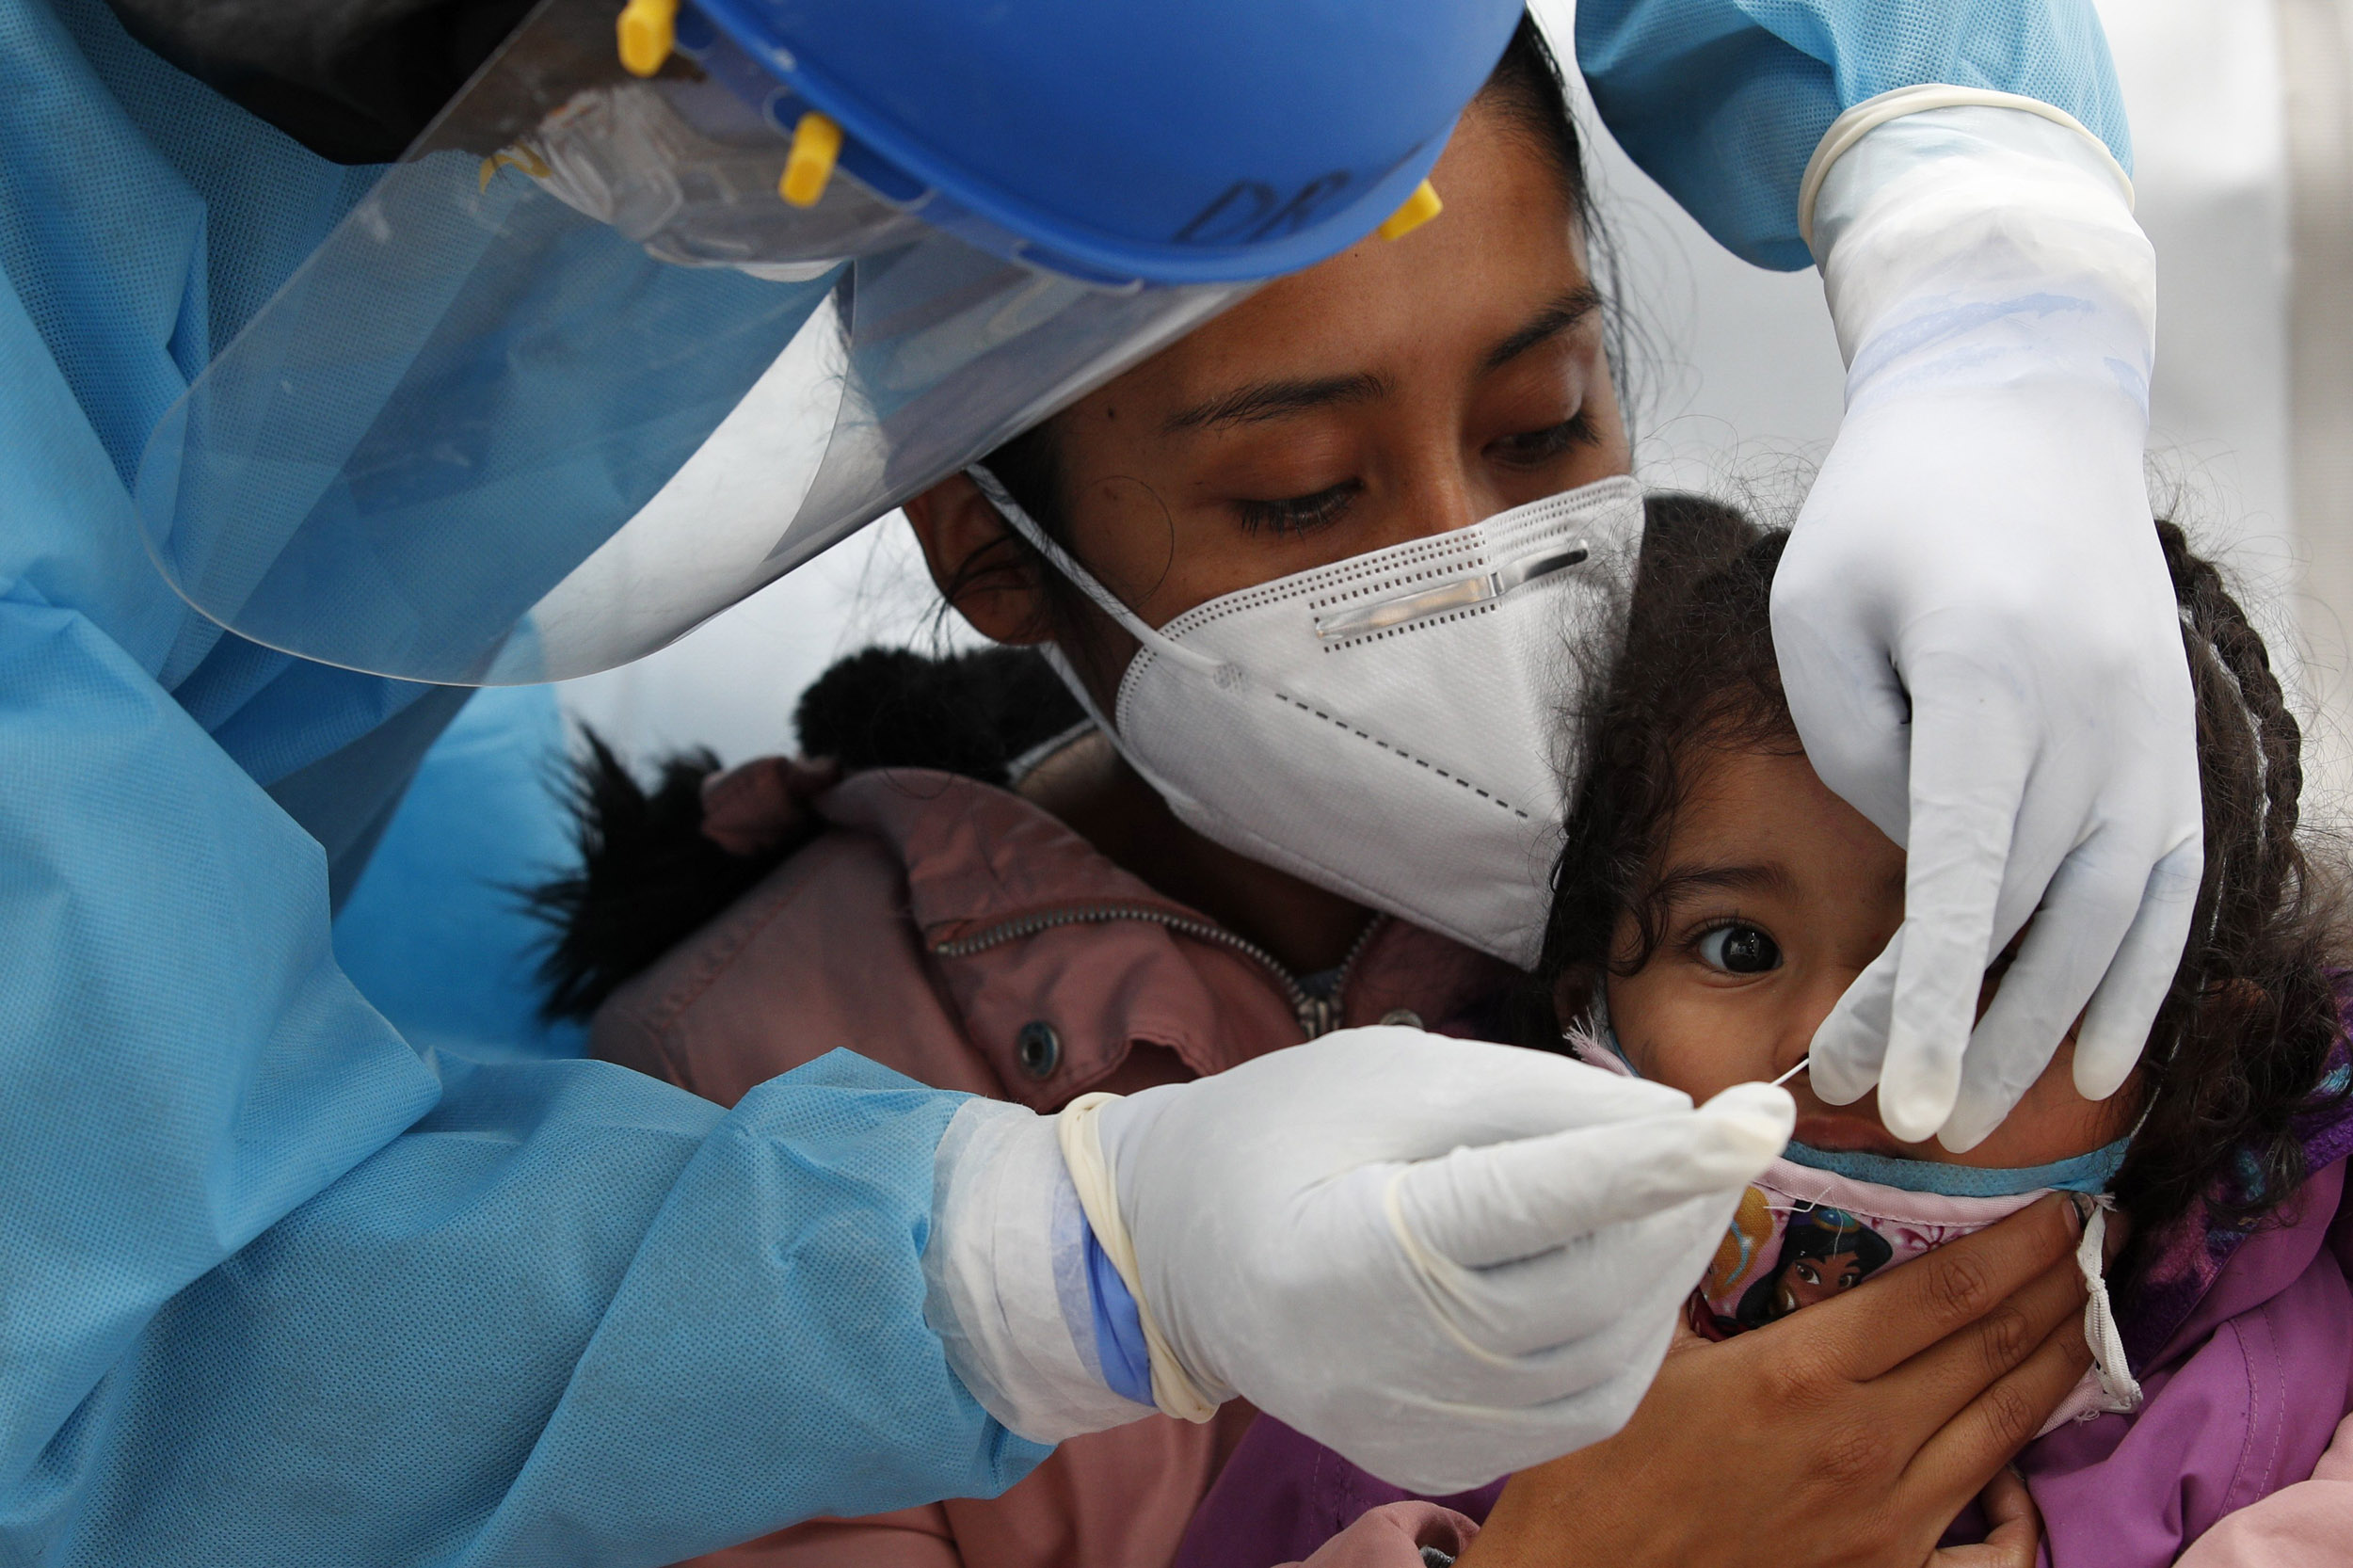 Mexico reports jump of over 9,000 new Covid-19 cases in one day